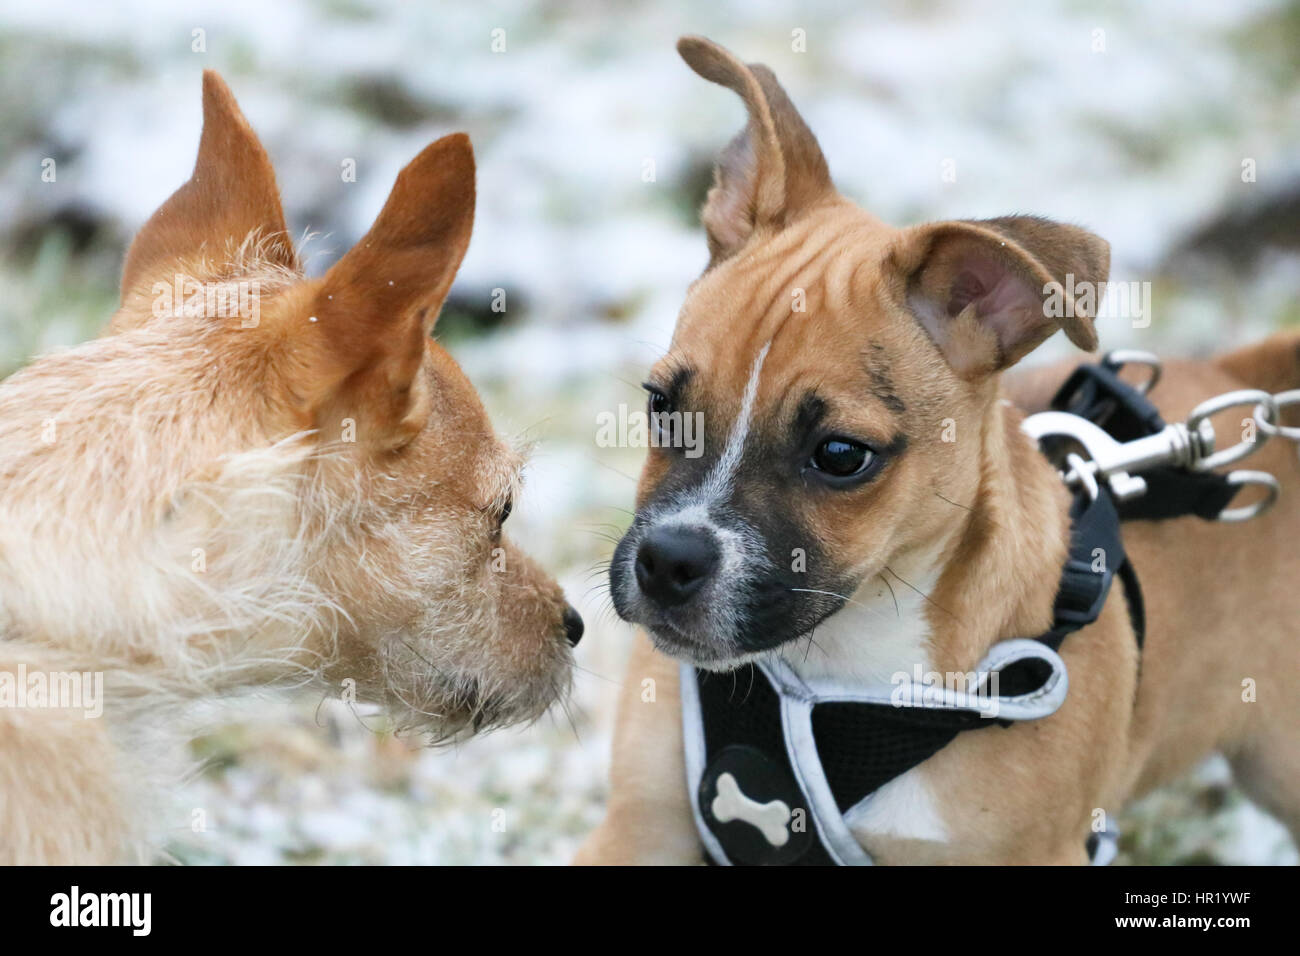 Jug Jack Russell Cross Pug Puppy On First Walk Making Friends With